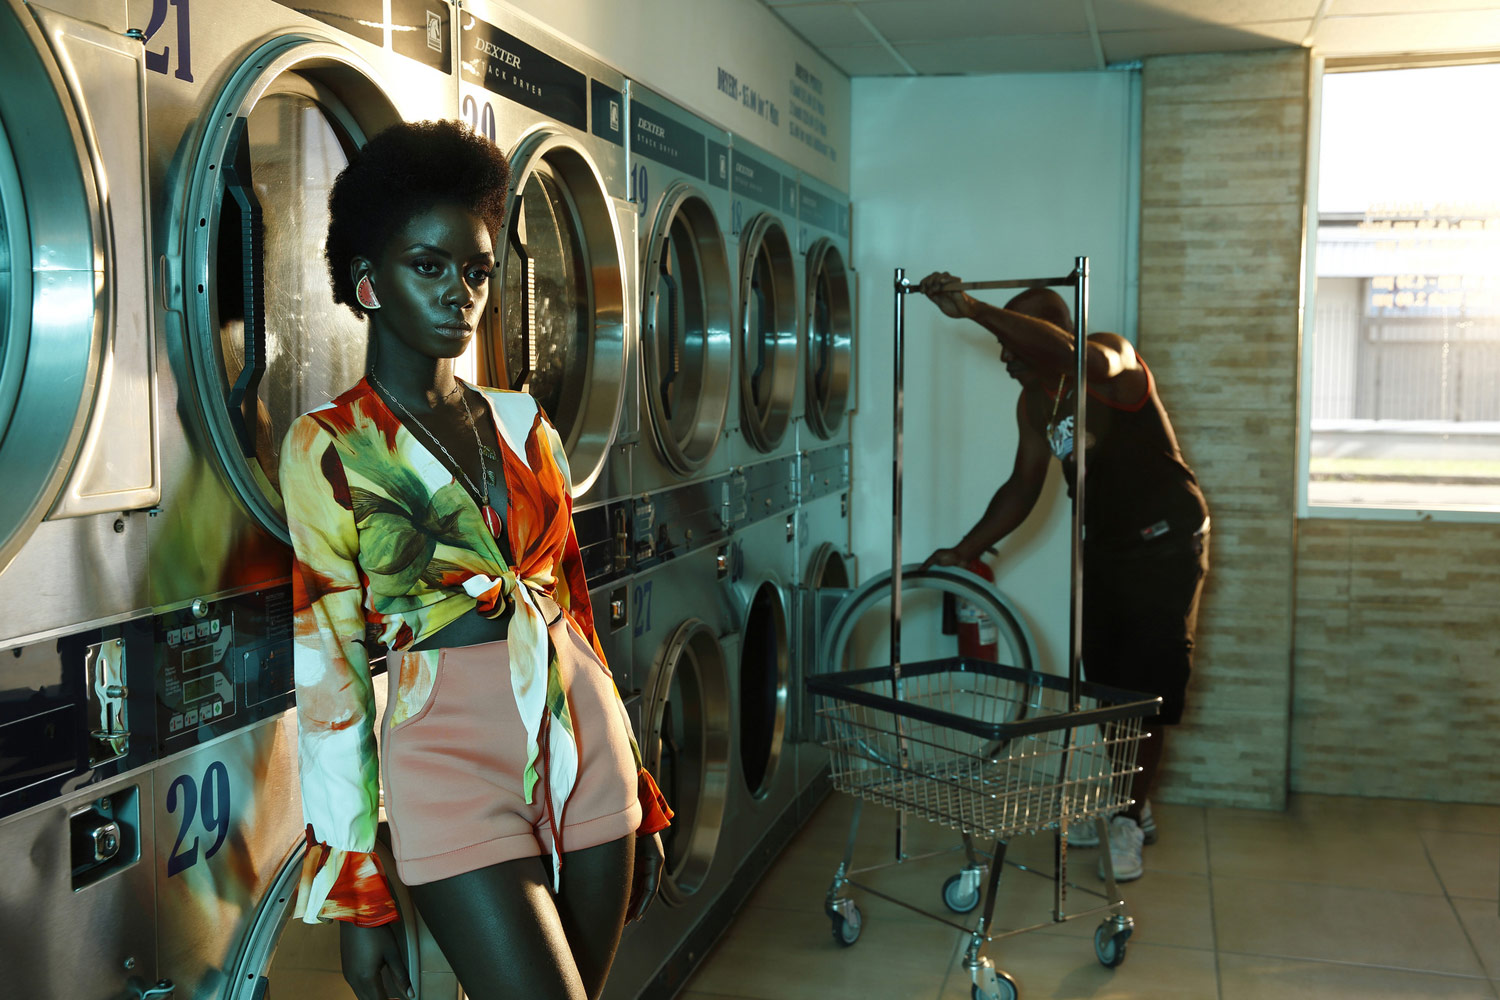 """Laundromat #2"", © Antony Scully, Diego Martin, Diego Martin, Trinidad And Tobago, First Place Submission : Two Lights, Rangefinder Lighting Photography Contest"